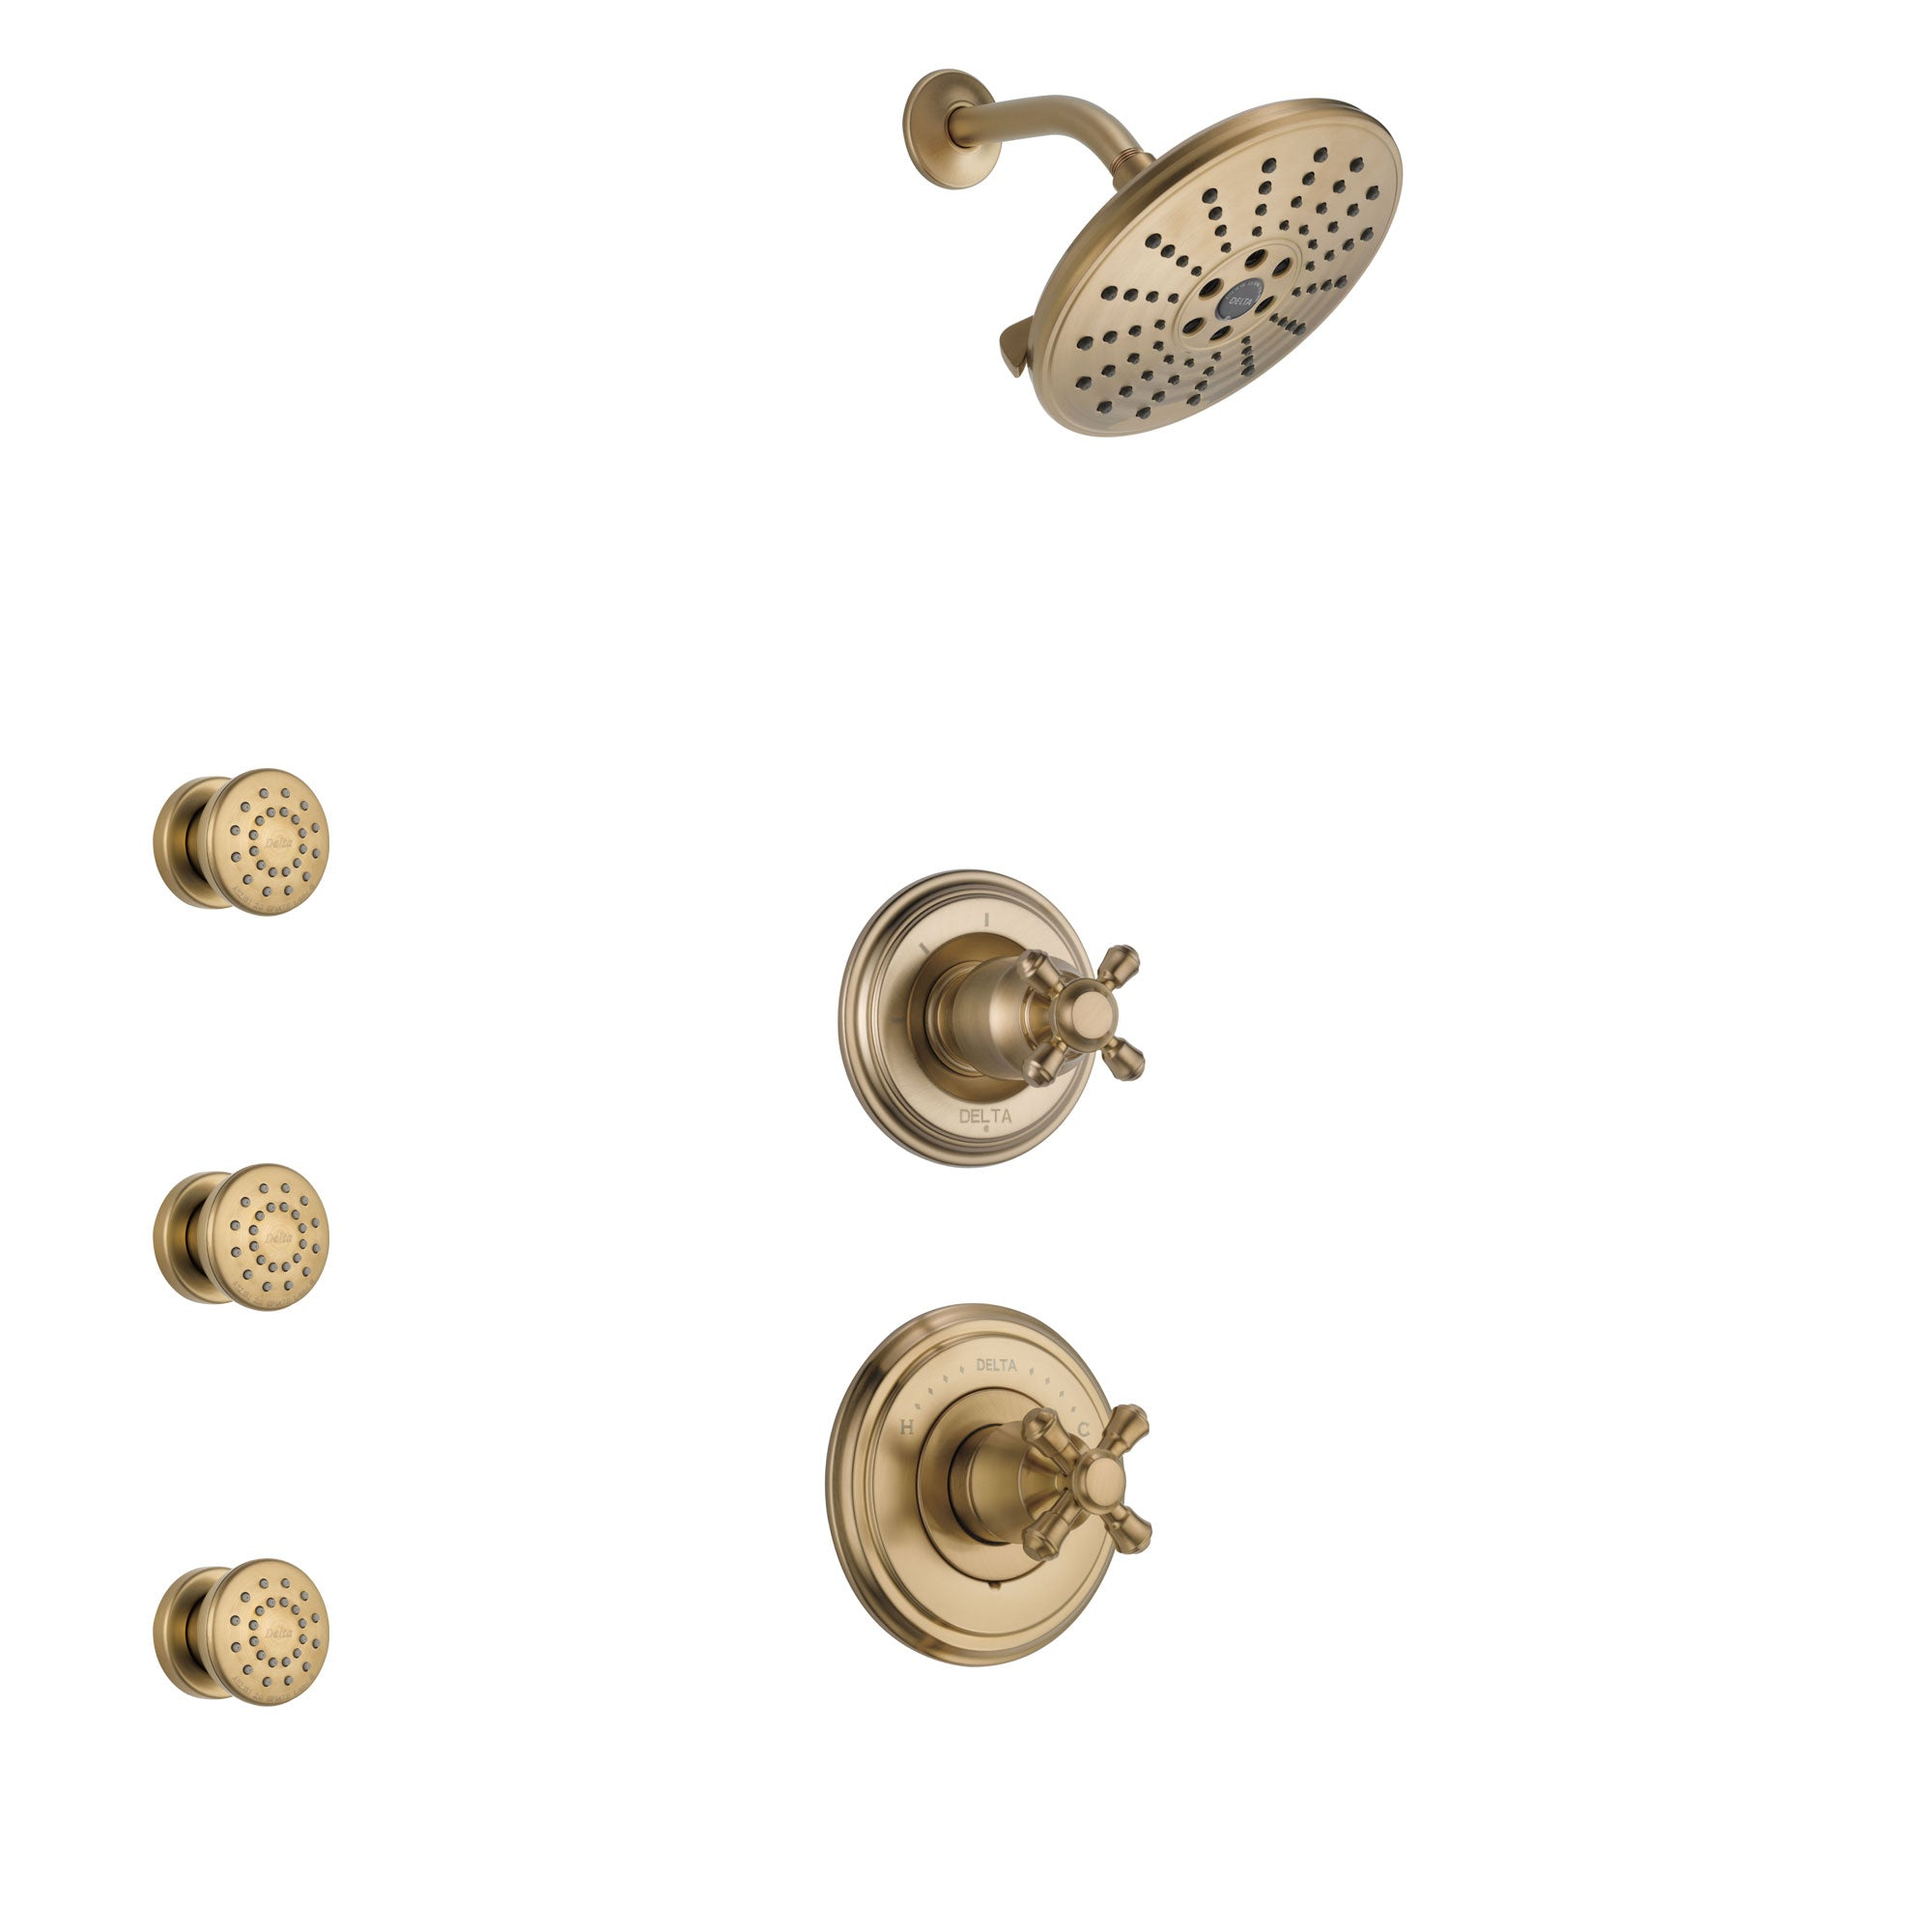 Delta Cassidy Champagne Bronze Finish Shower System with Control Handle, 3-Setting Diverter, Showerhead, and 3 Body Sprays SS14971CZ6